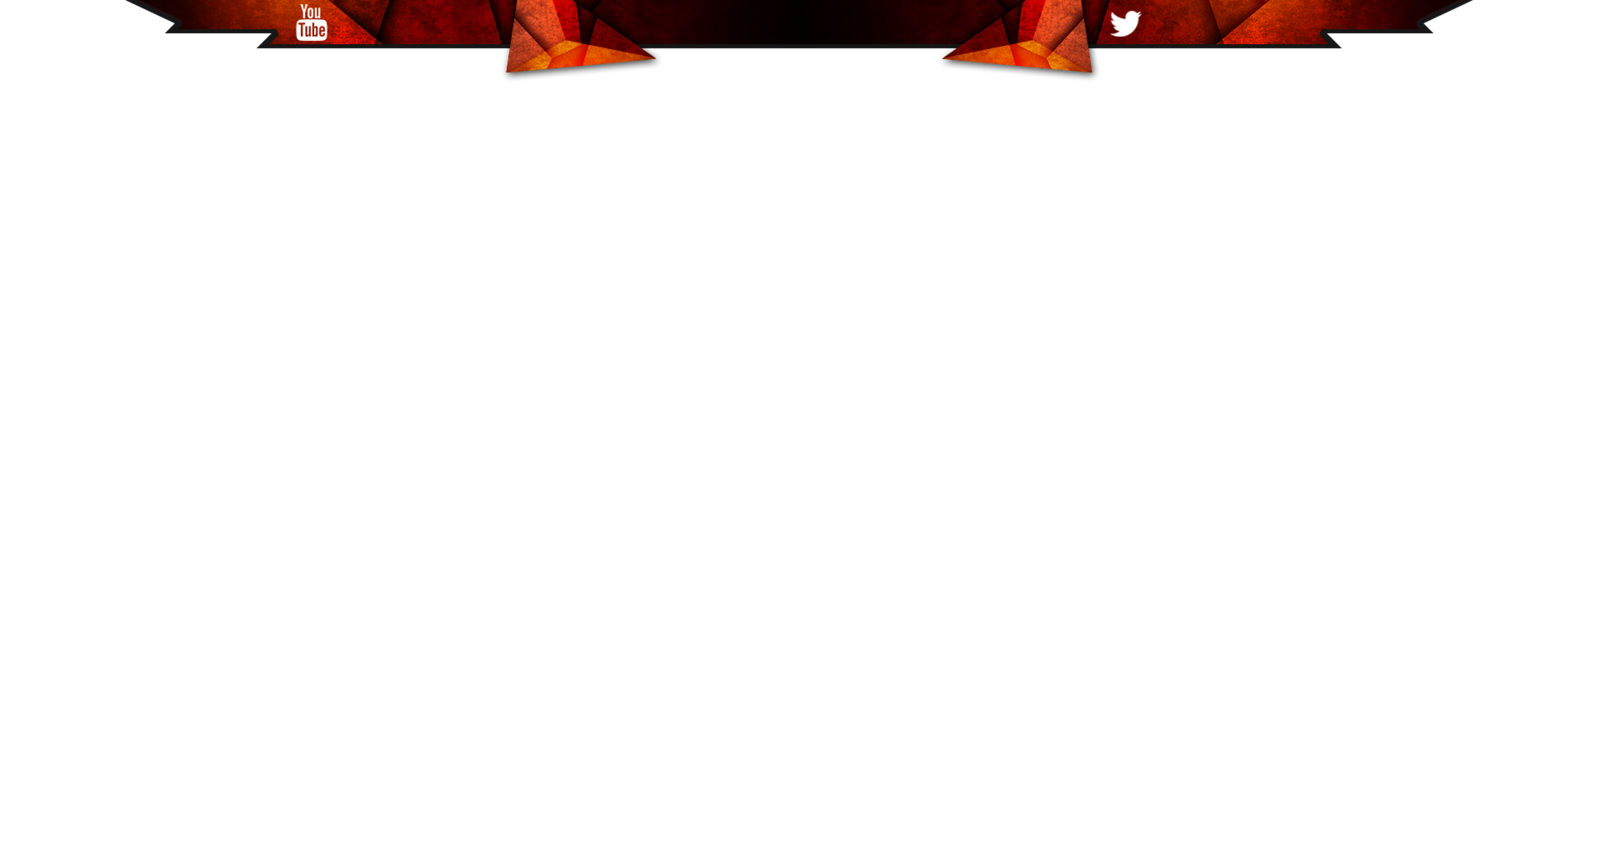 Overlay template png. Twitch stream dark red